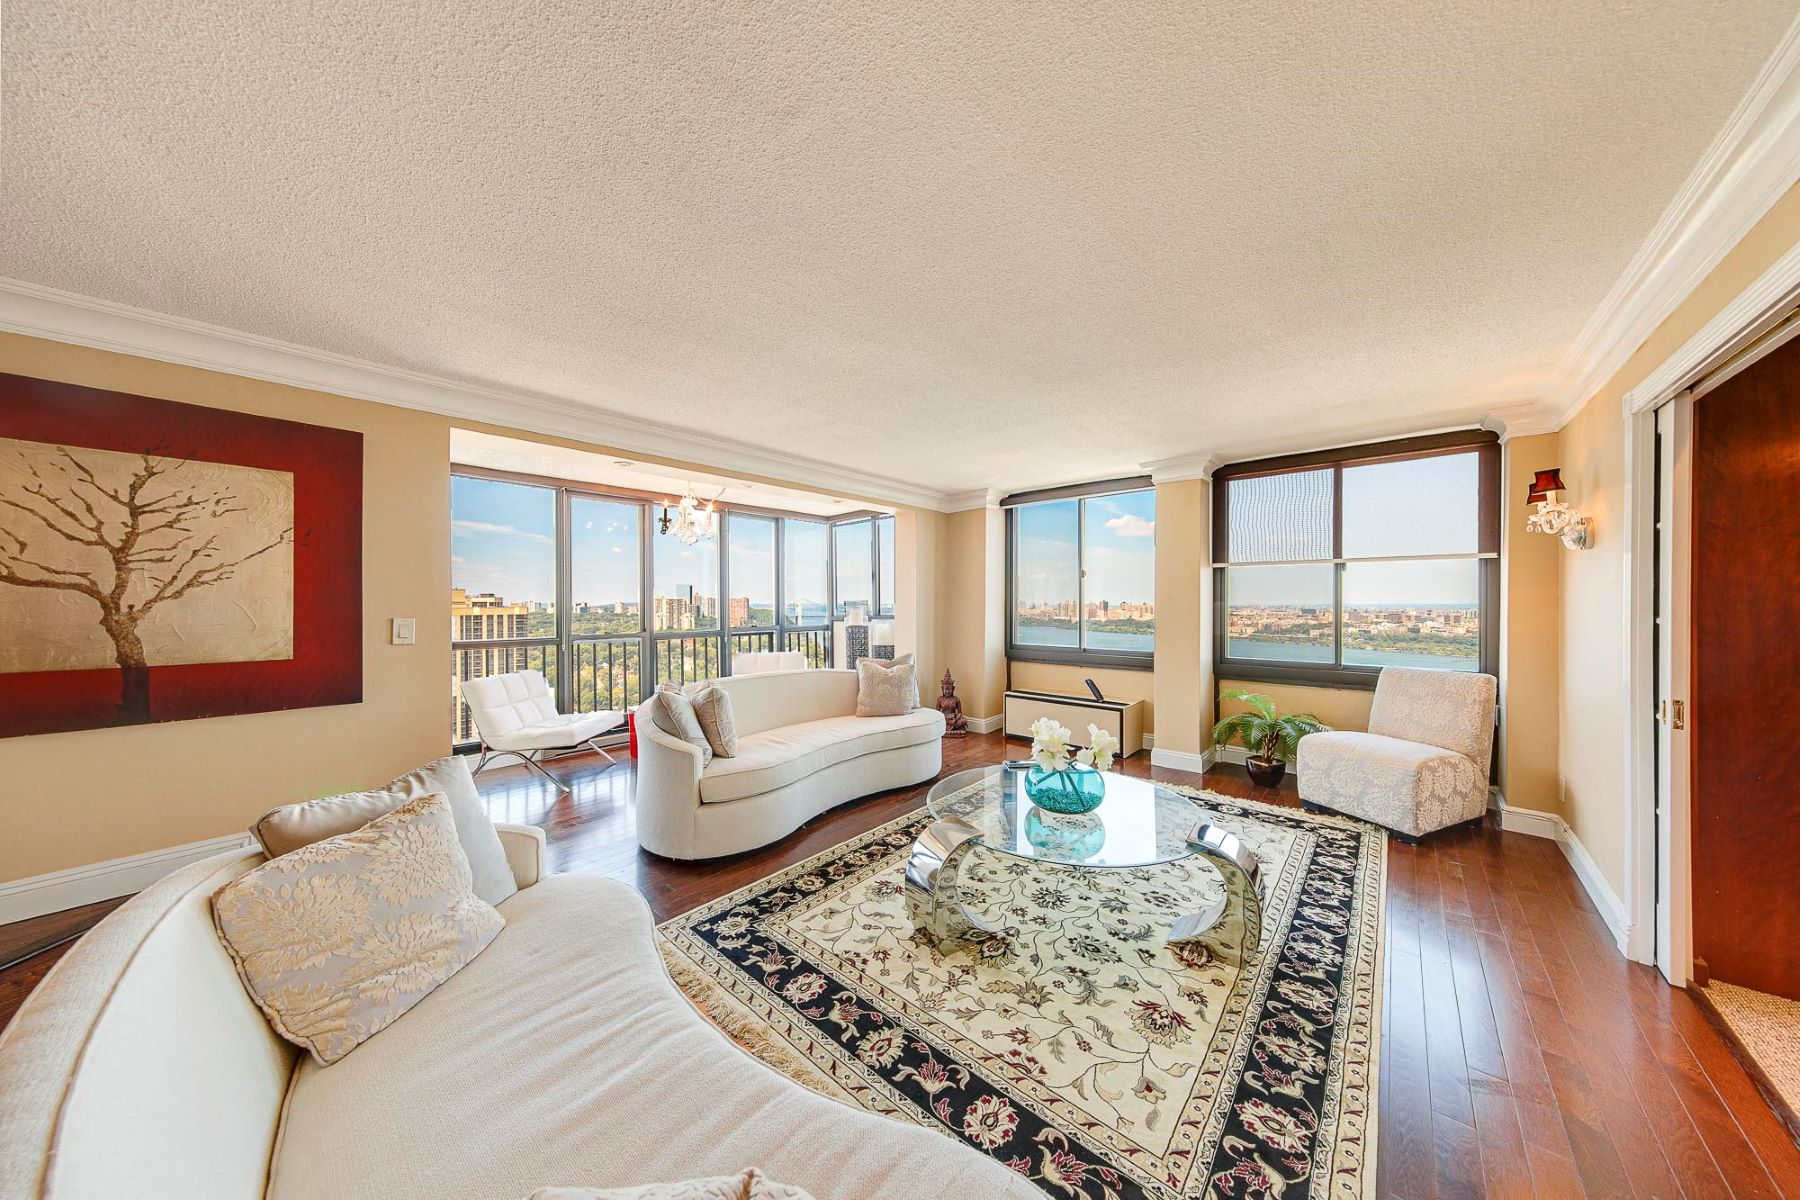 Condominiums for Sale at Fabulous Views 200 Winston Dr 2608, Cliffside Park, New Jersey 07010 United States